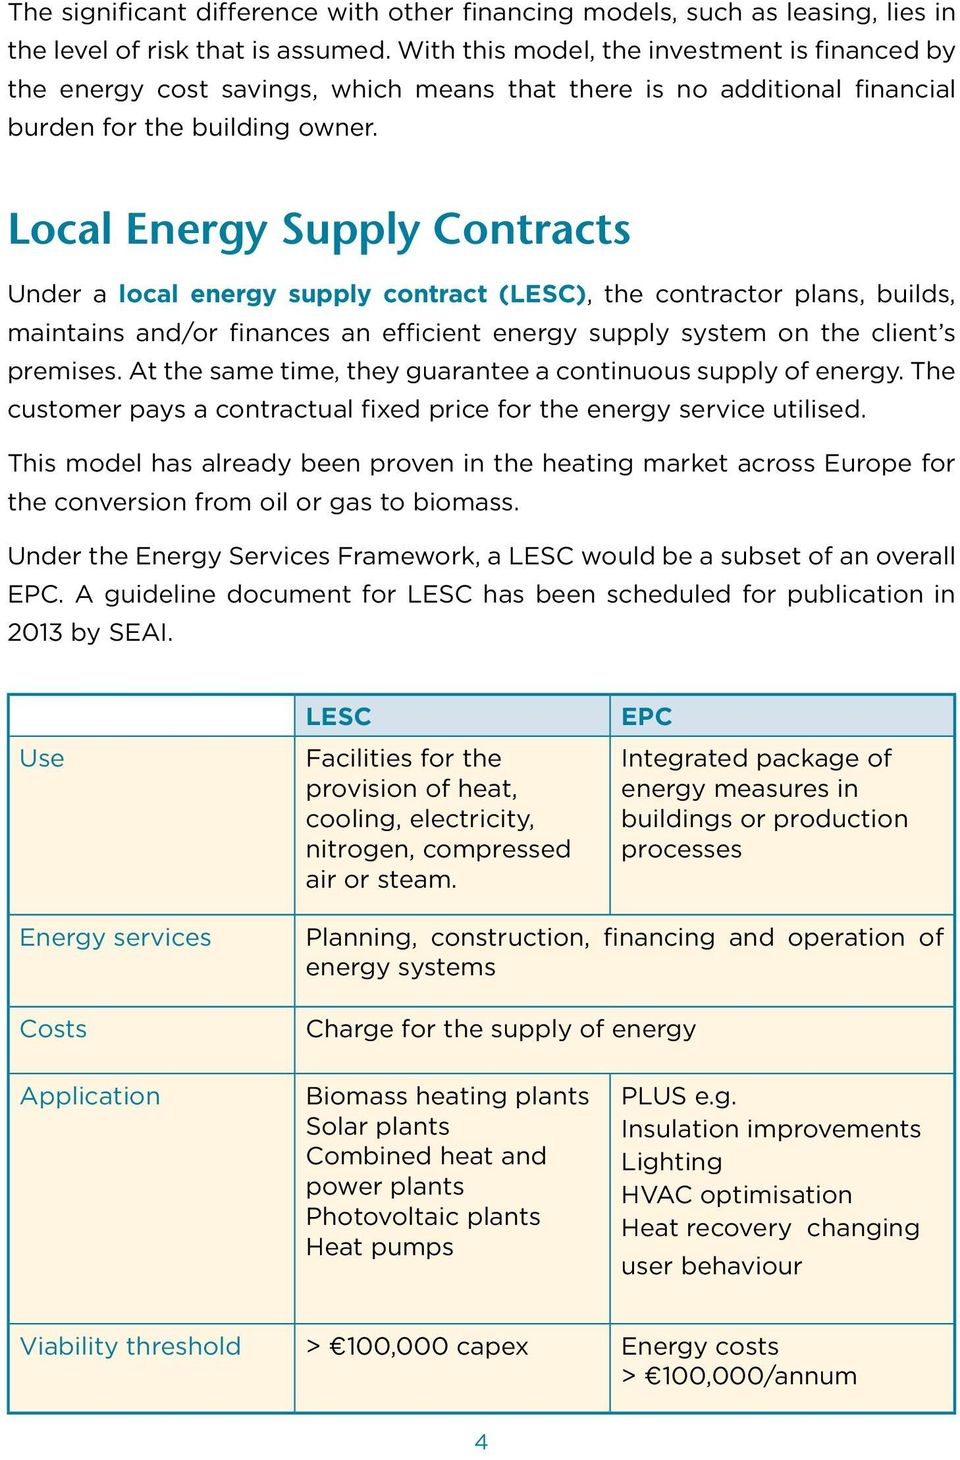 Local Energy Supply Contracts Under a local energy supply contract (LESC), the contractor plans, builds, maintains and/or finances an efficient energy supply system on the client s premises.